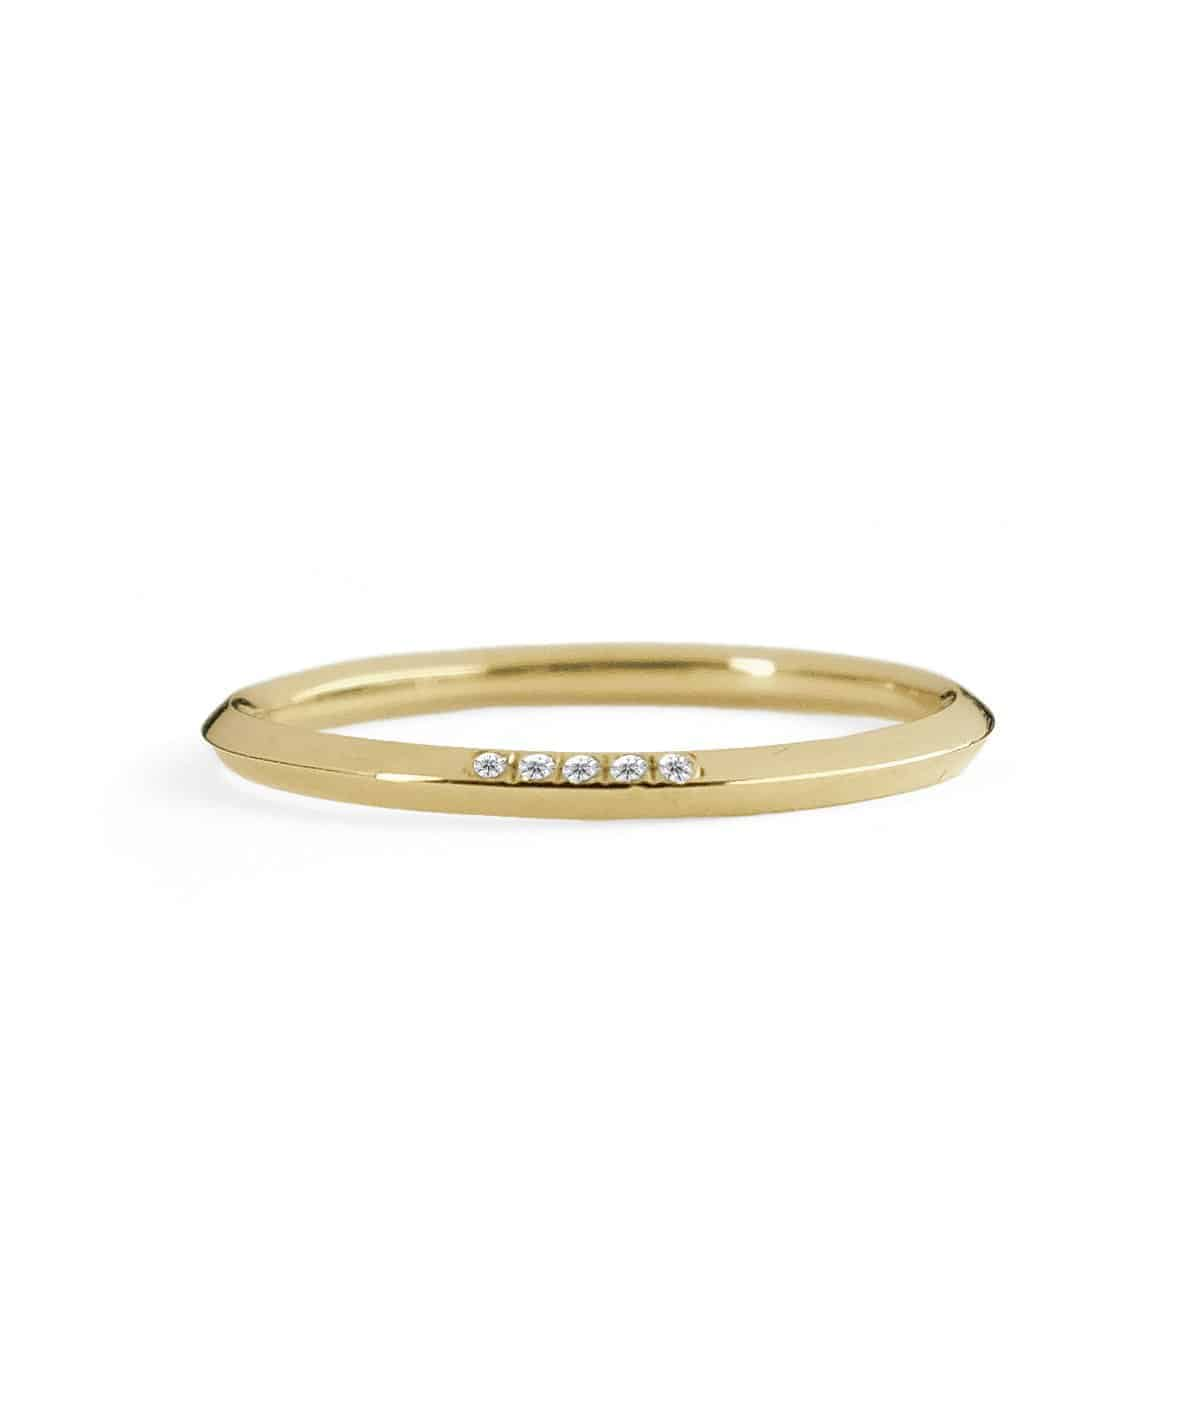 This is an image of The Intricate Wedding Band